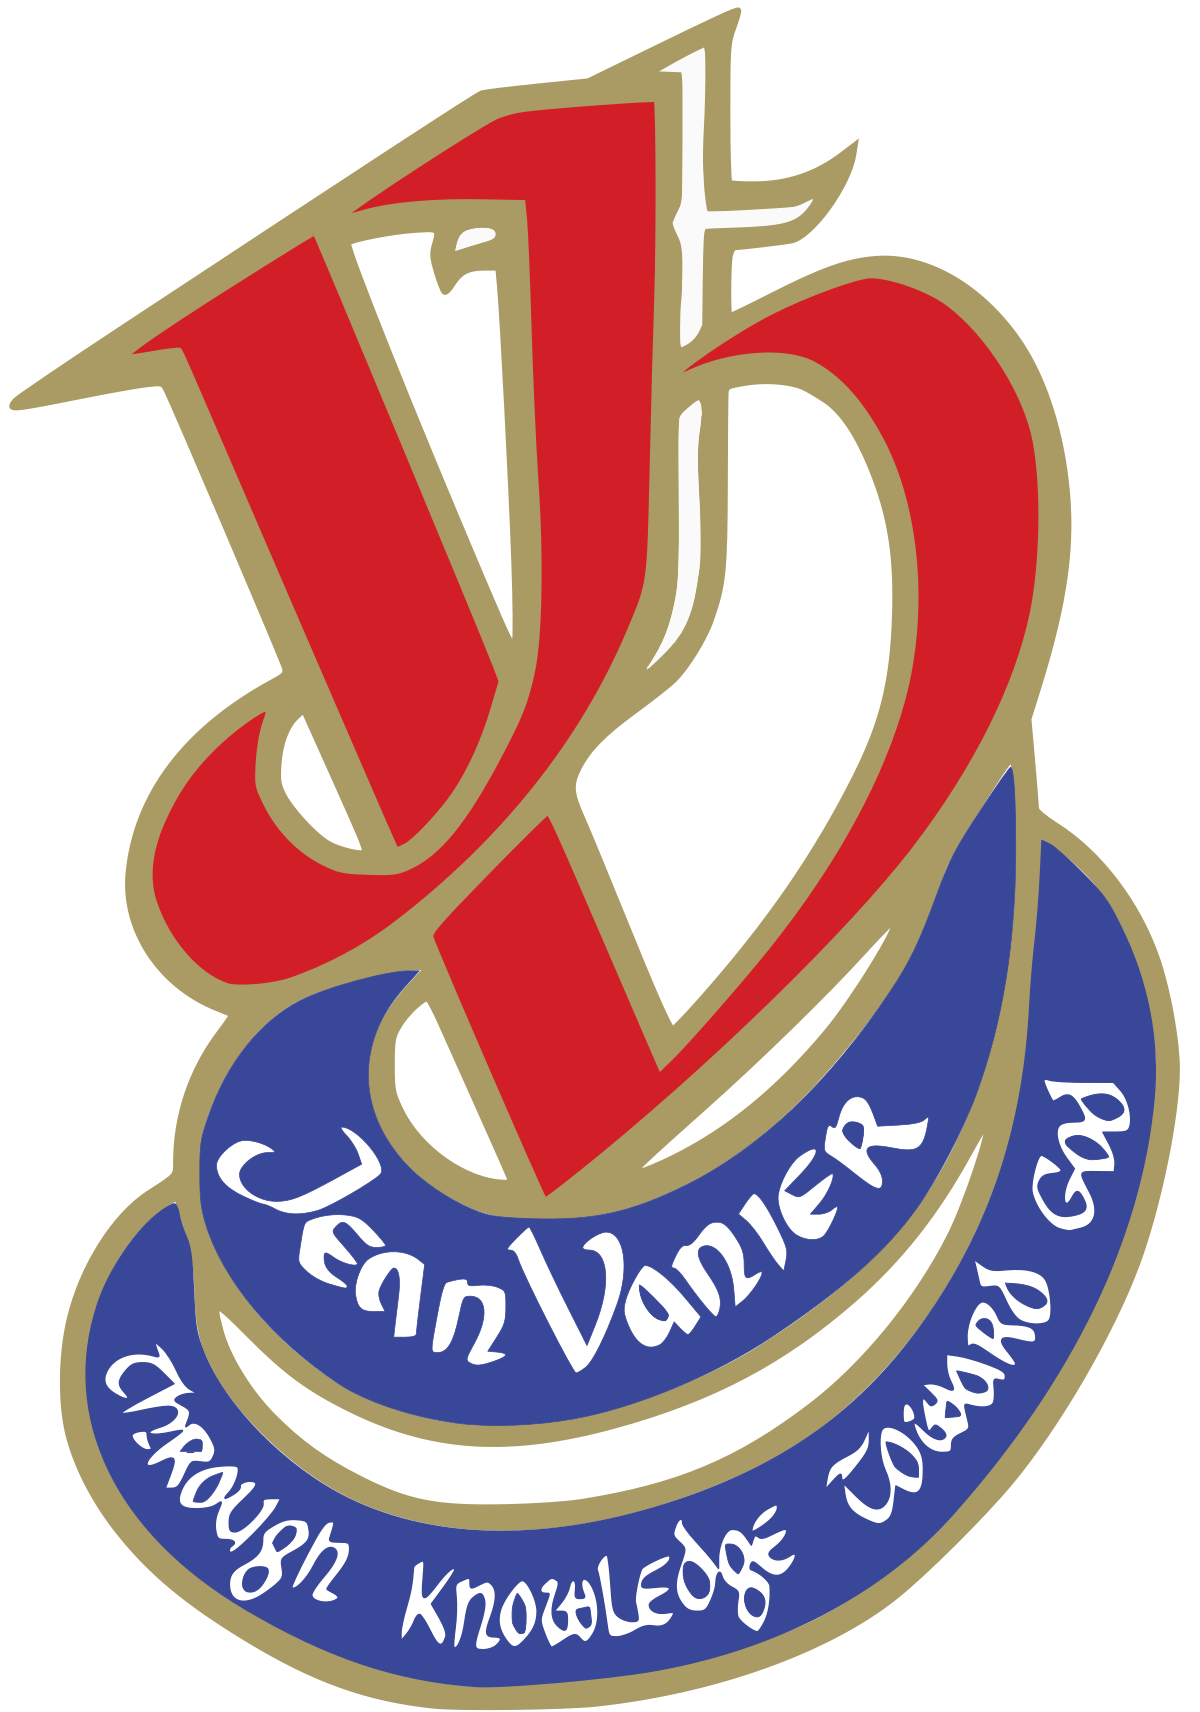 Board of education for catholic school clipart graphic black and white stock Jean Vanier Catholic Secondary School - Wikipedia graphic black and white stock